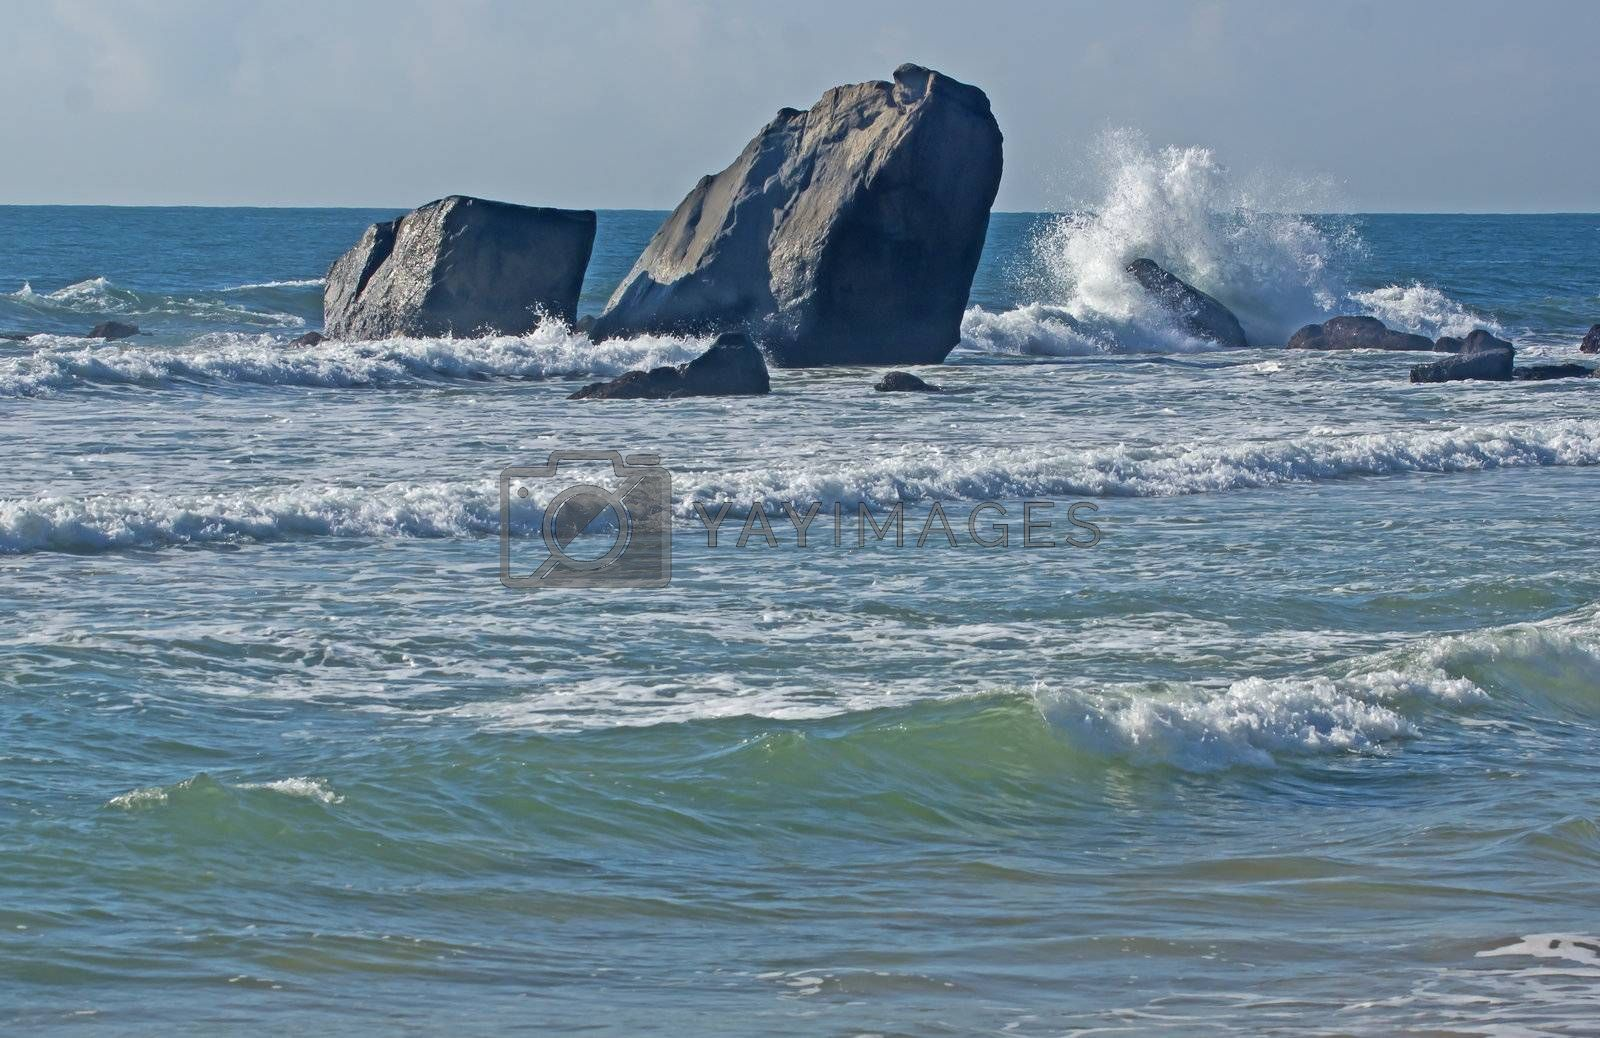 The sea and the sky, the white waves, black rocks, very beautiful